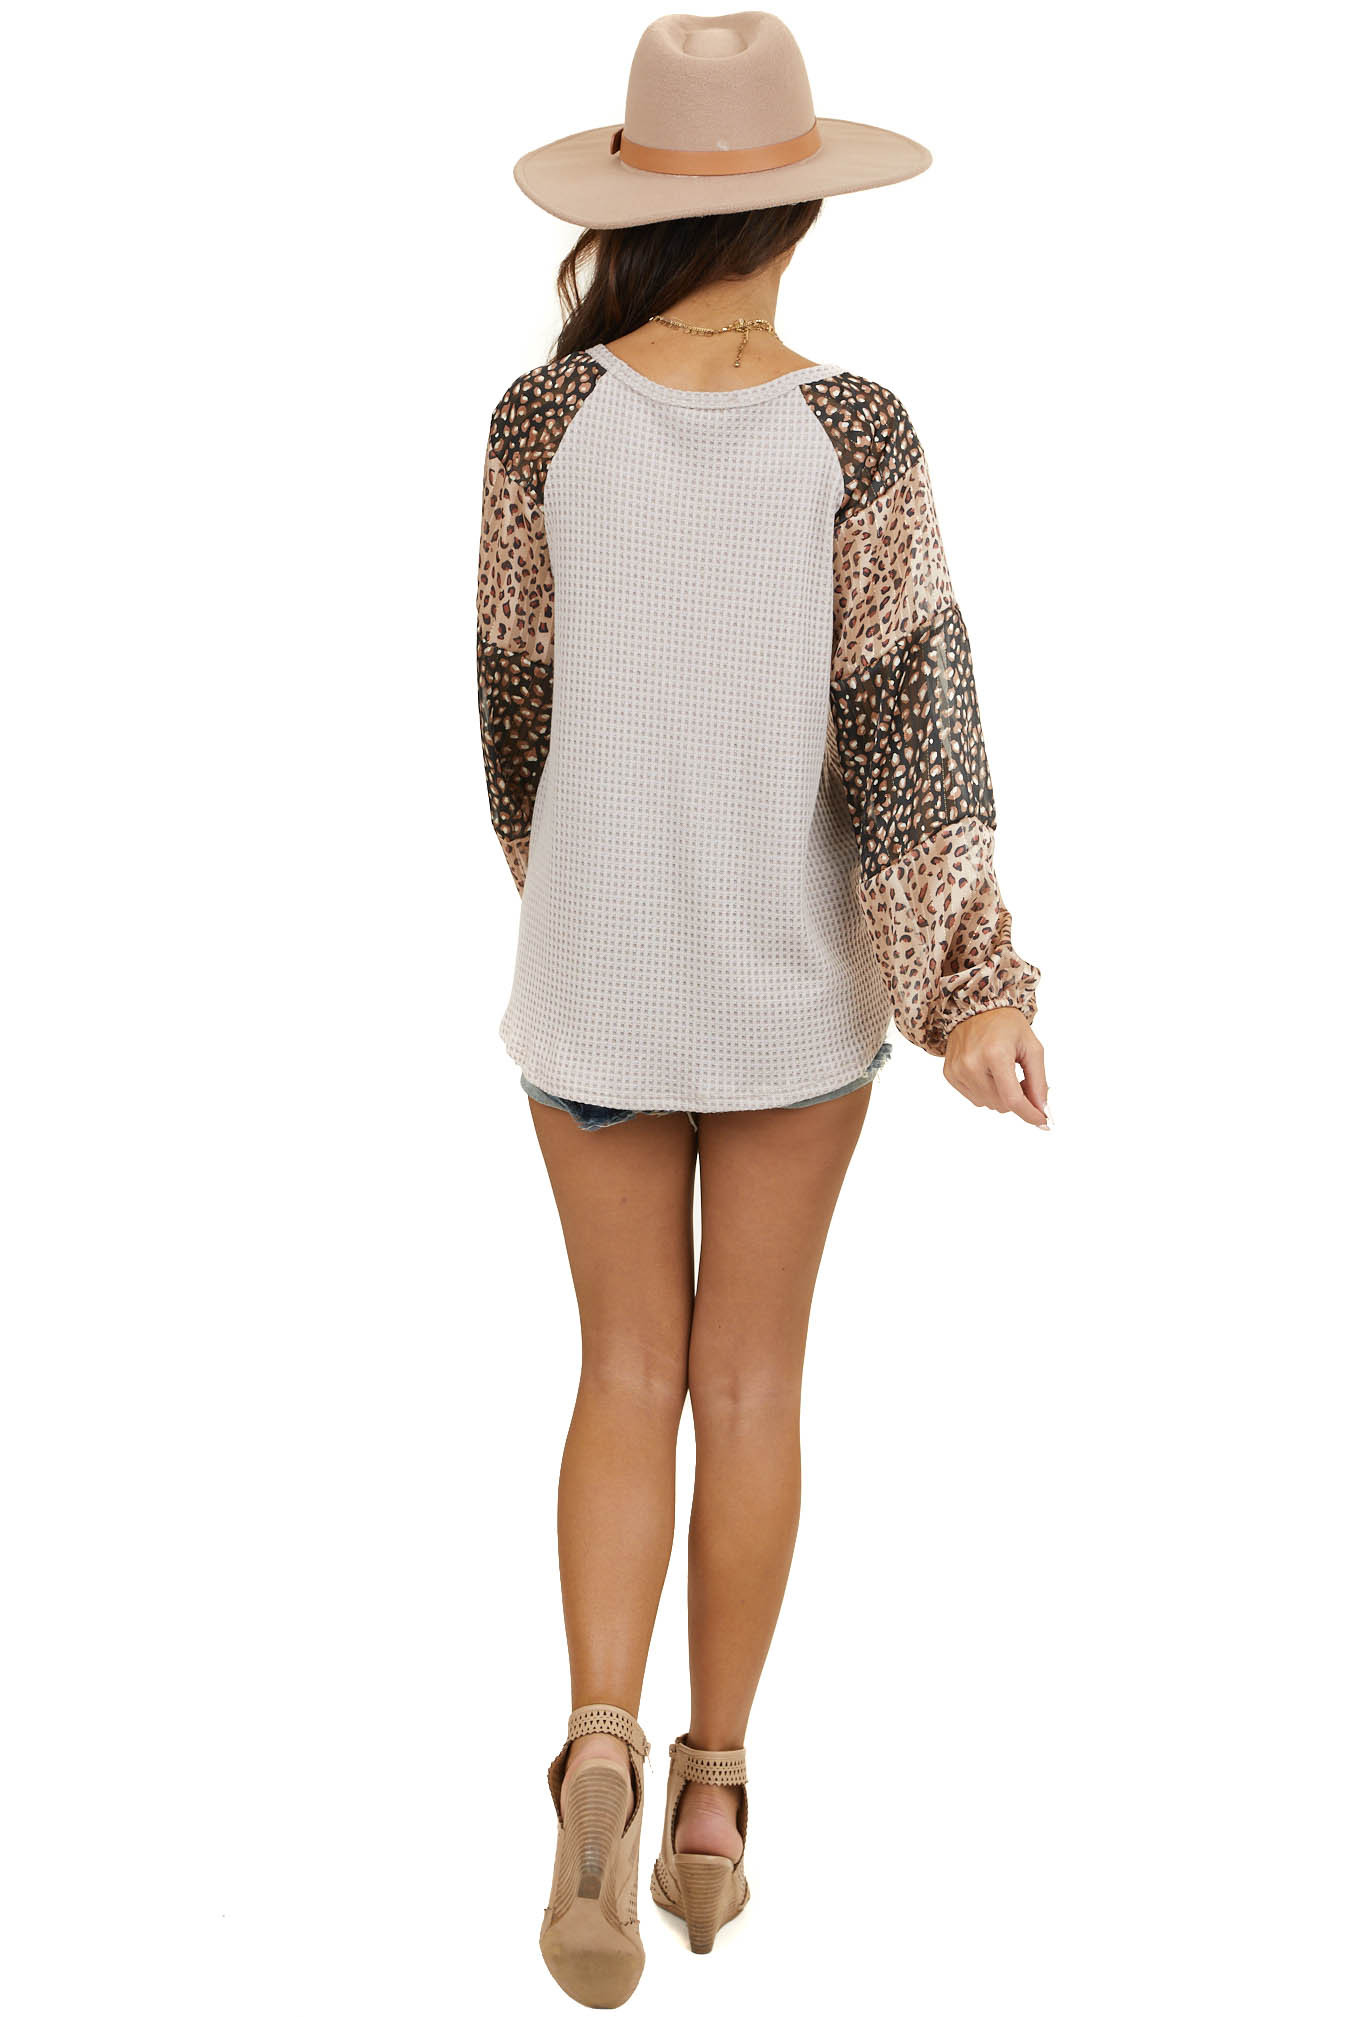 Dusty Latte Top with Long Multicolor Leopard Print Sleeves